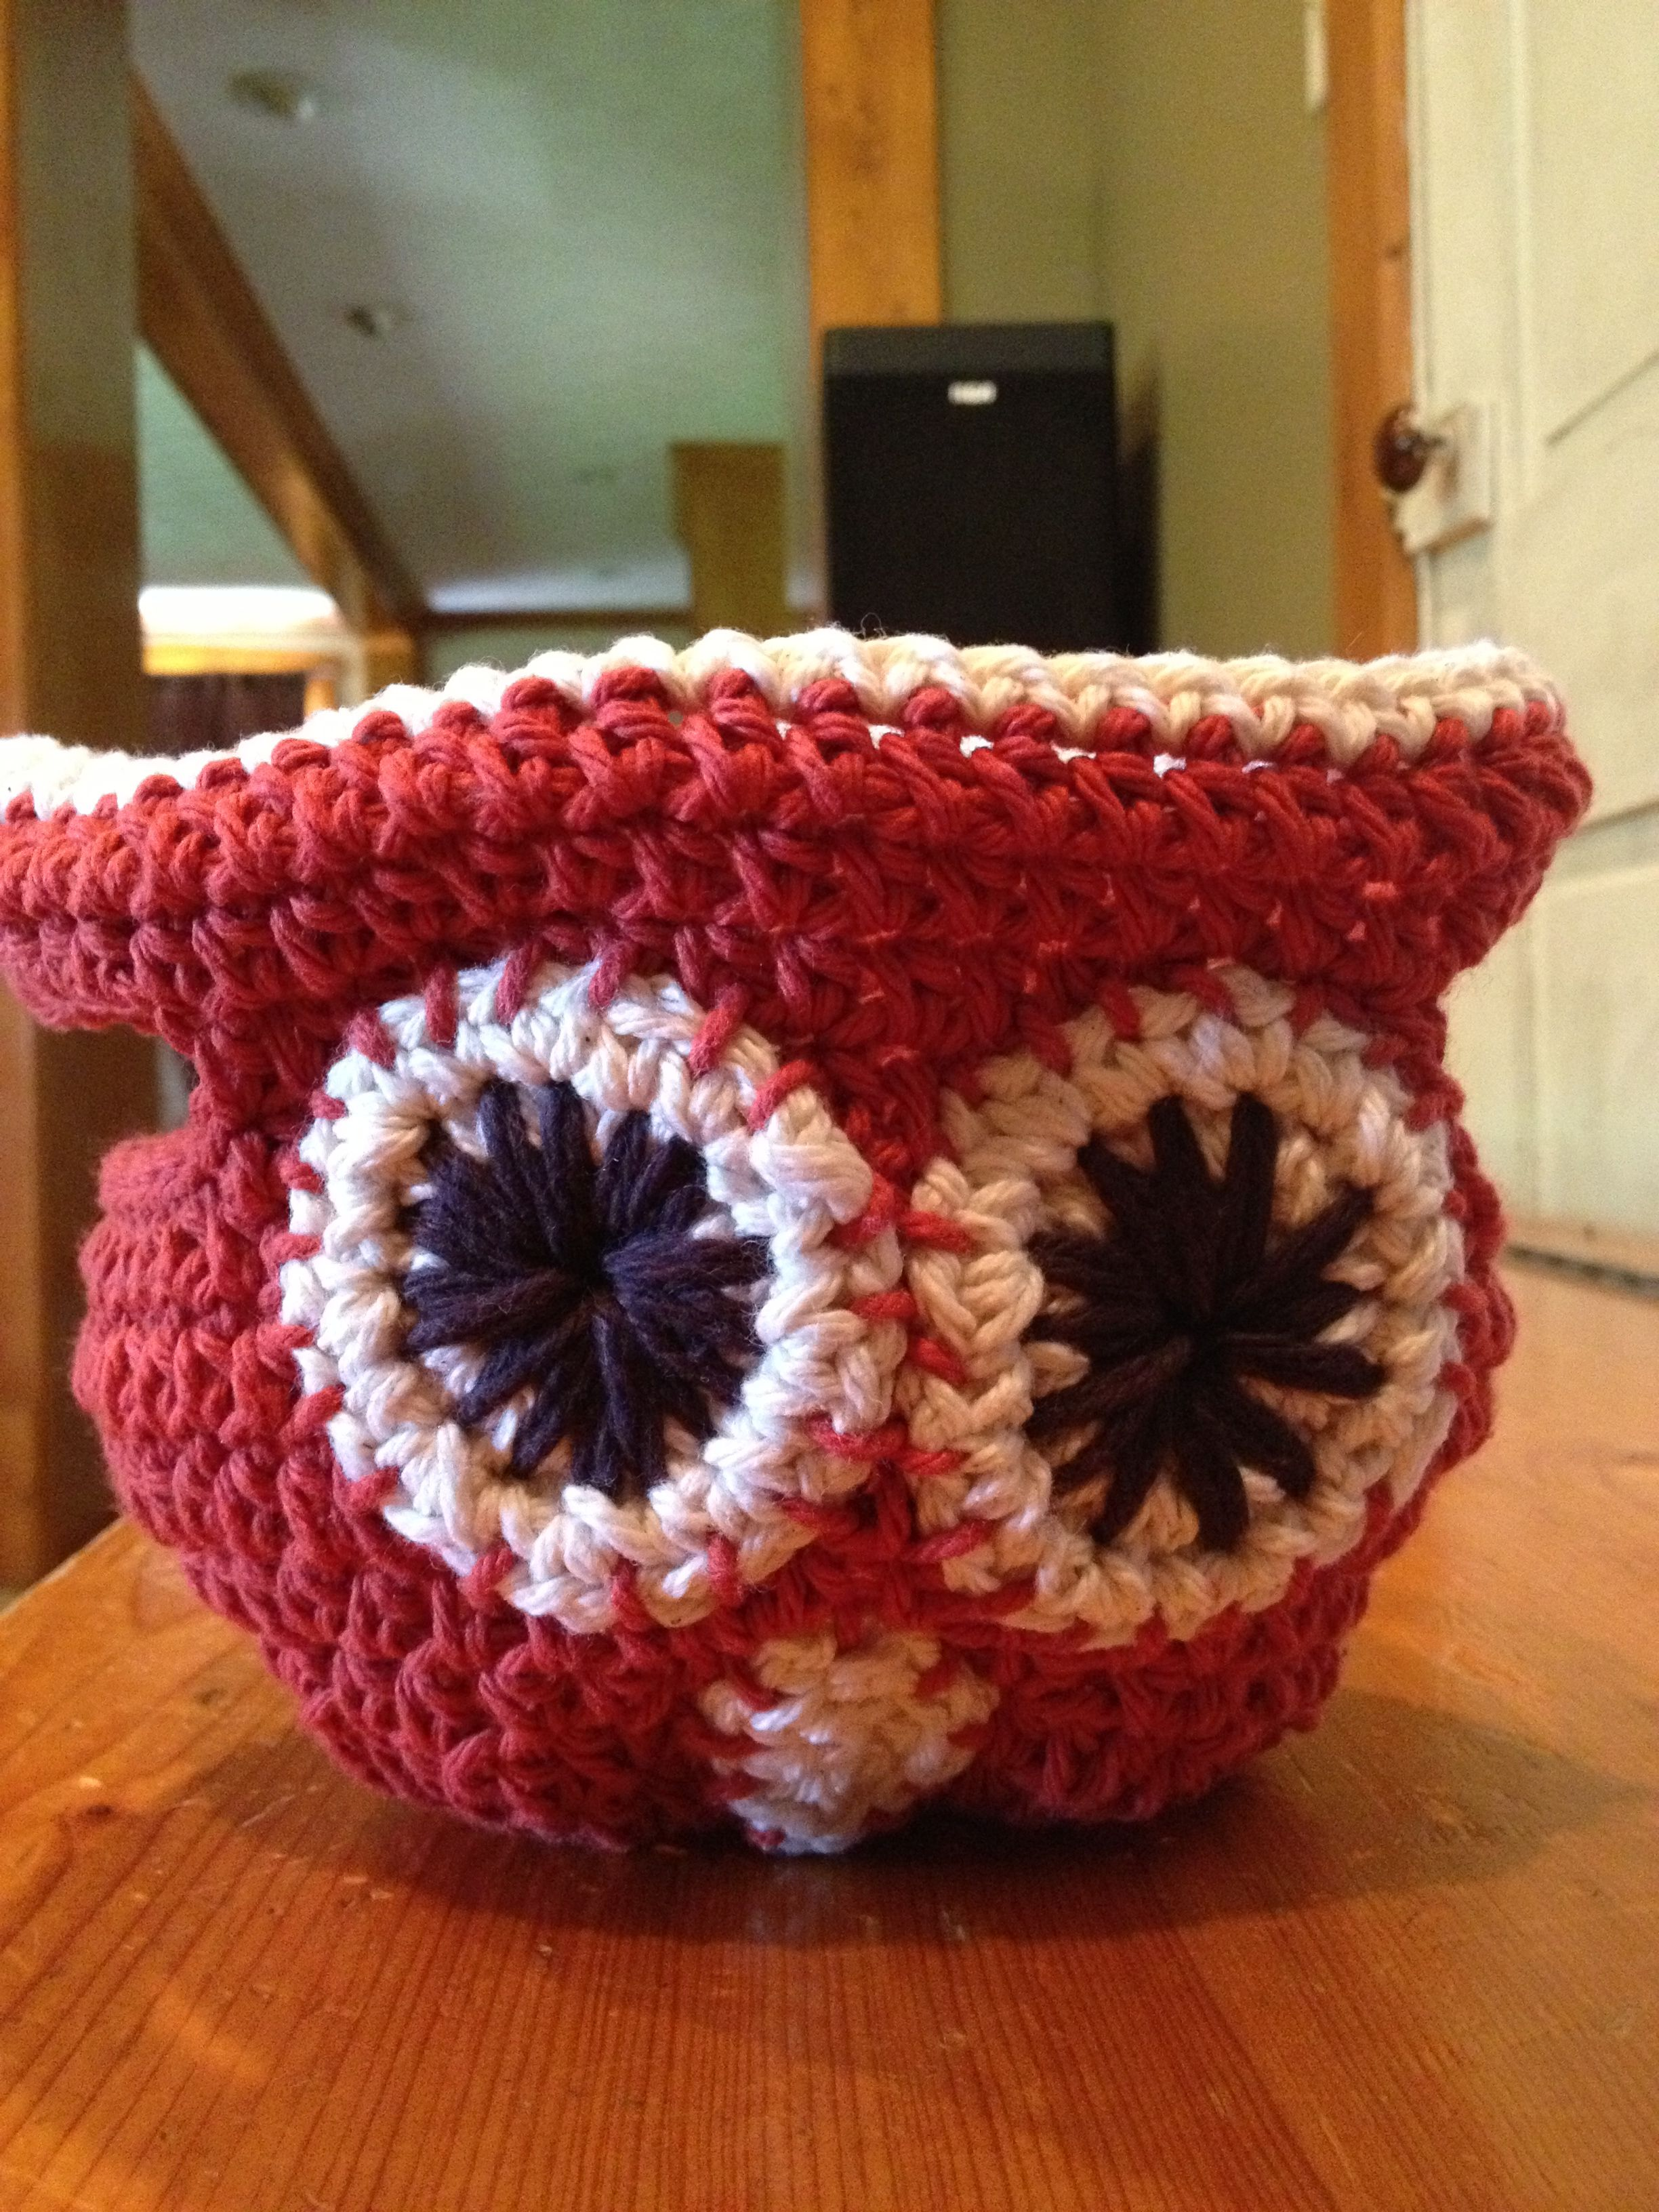 Crochet Owl Basket : Crochet owl basket crochet Pinterest